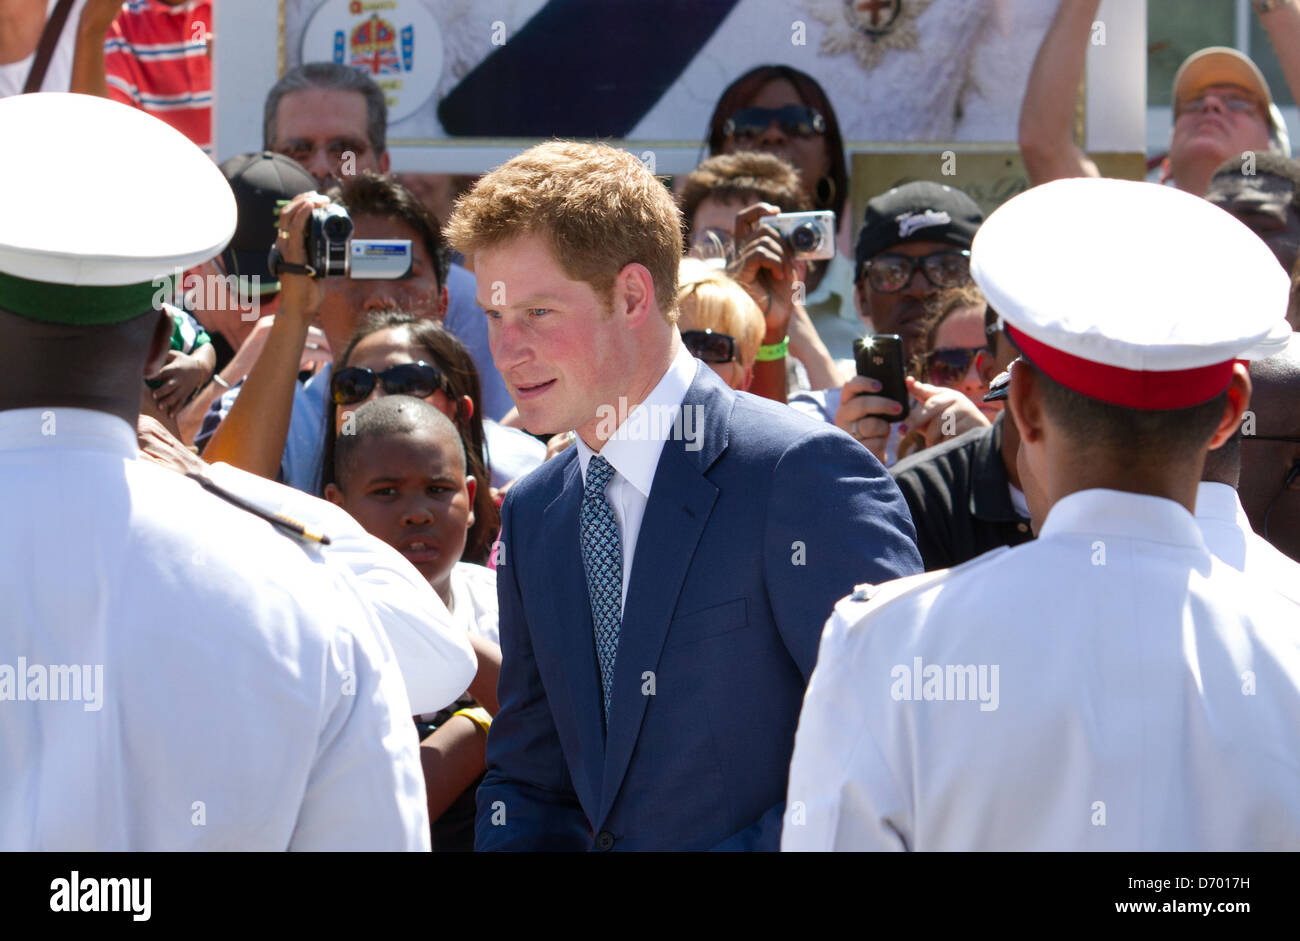 Britain's Prince Harry meets dignitaries at the opening of the Queen's Diamond Jubilee Exhibition in Rawson Square Stock Photo